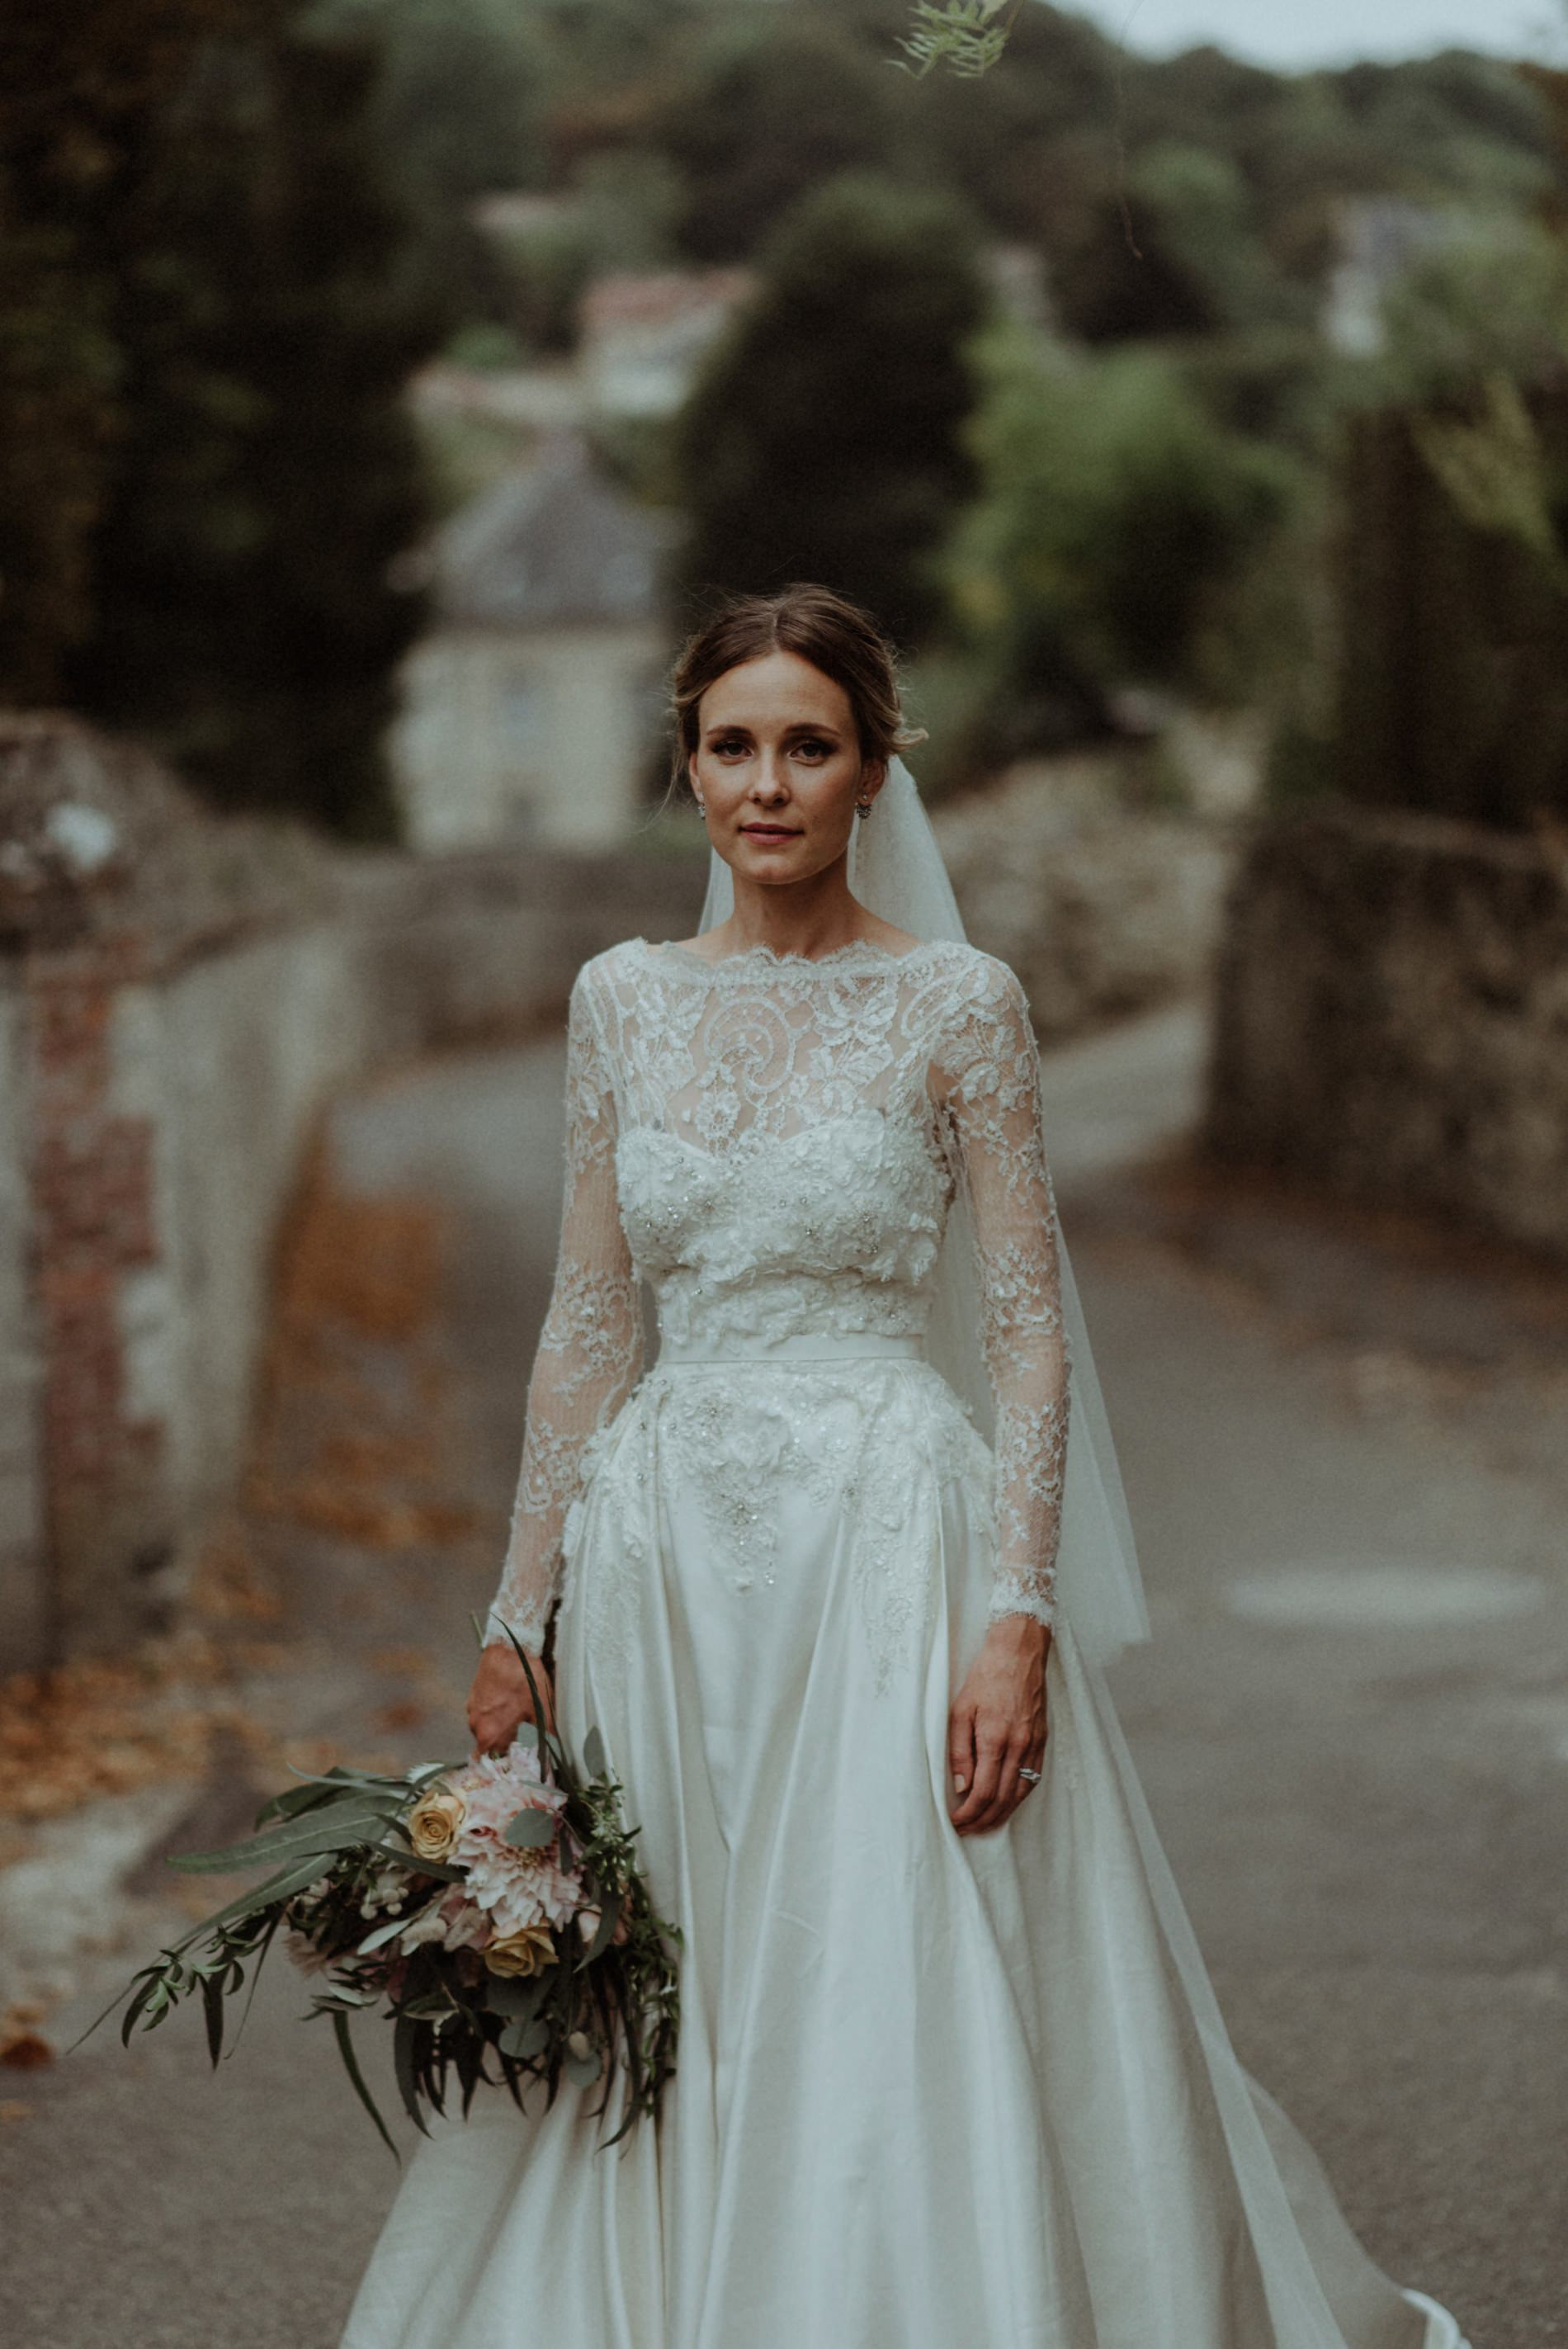 french bride portrait